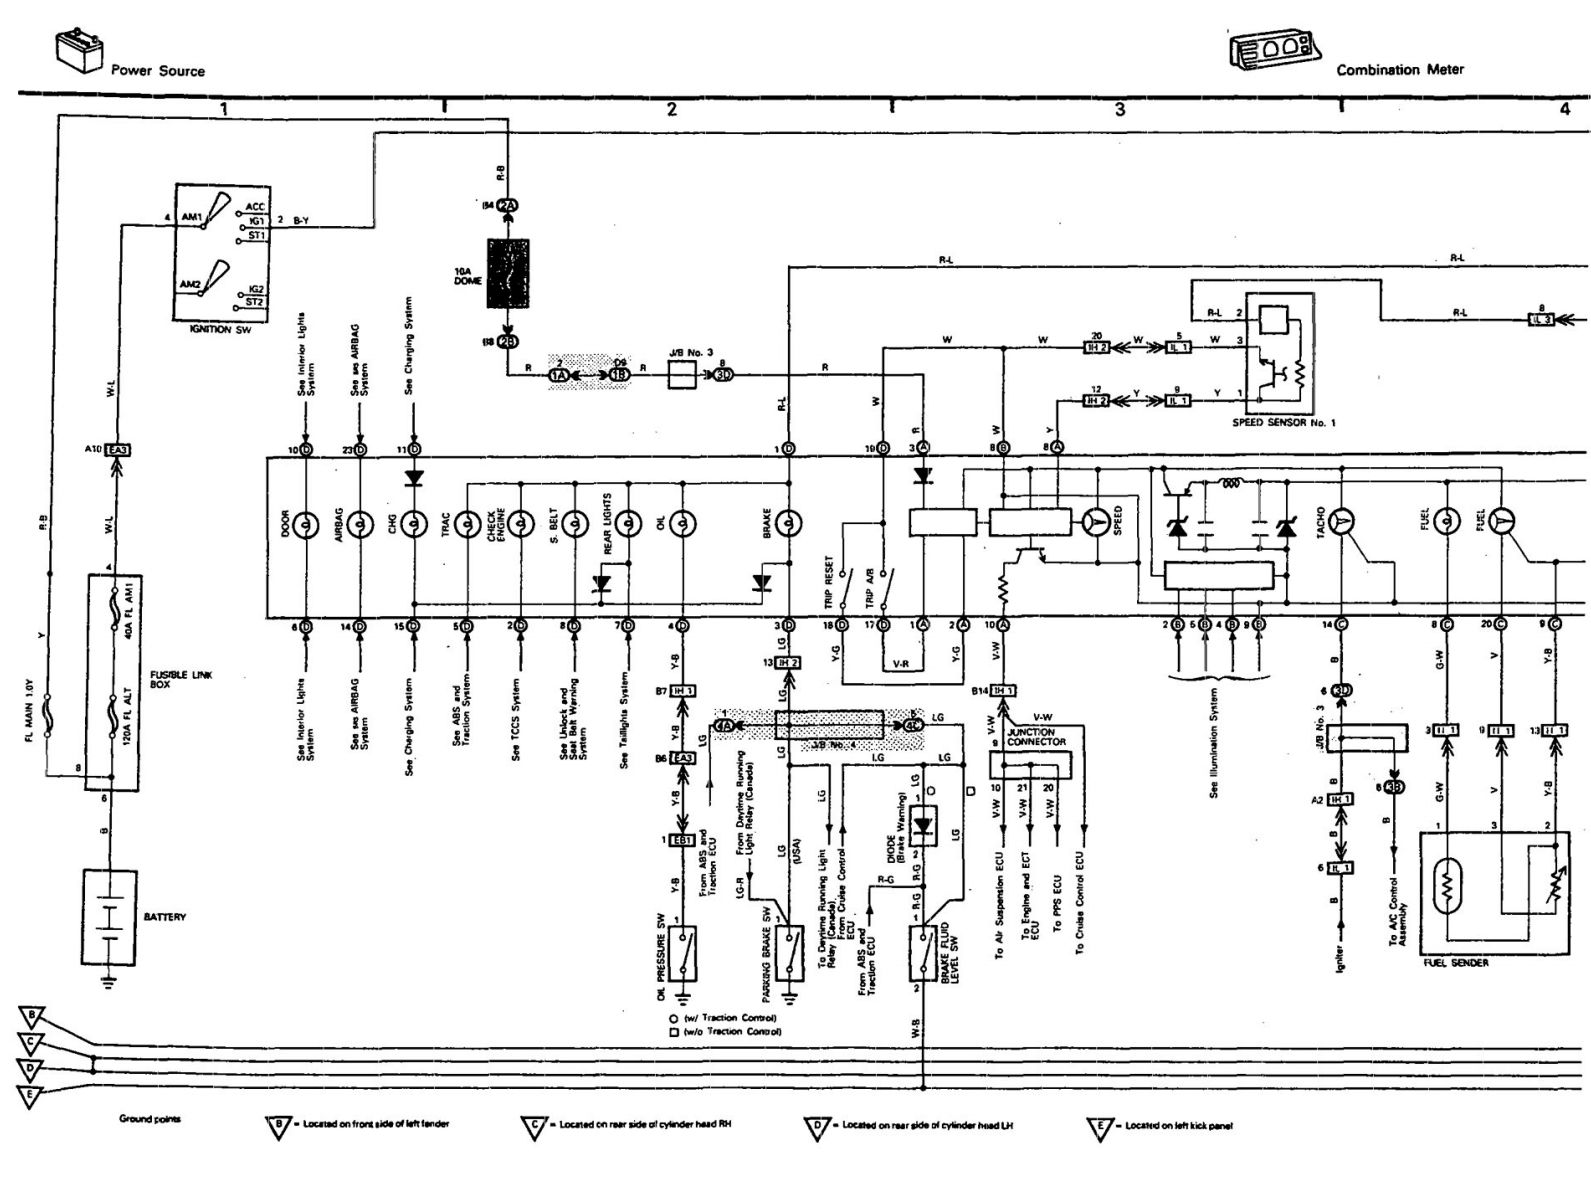 Wiring diagram for instrument cluster for 91 ls400 clublexus wiring diagram for instrument cluster for 91 ls400 asfbconference2016